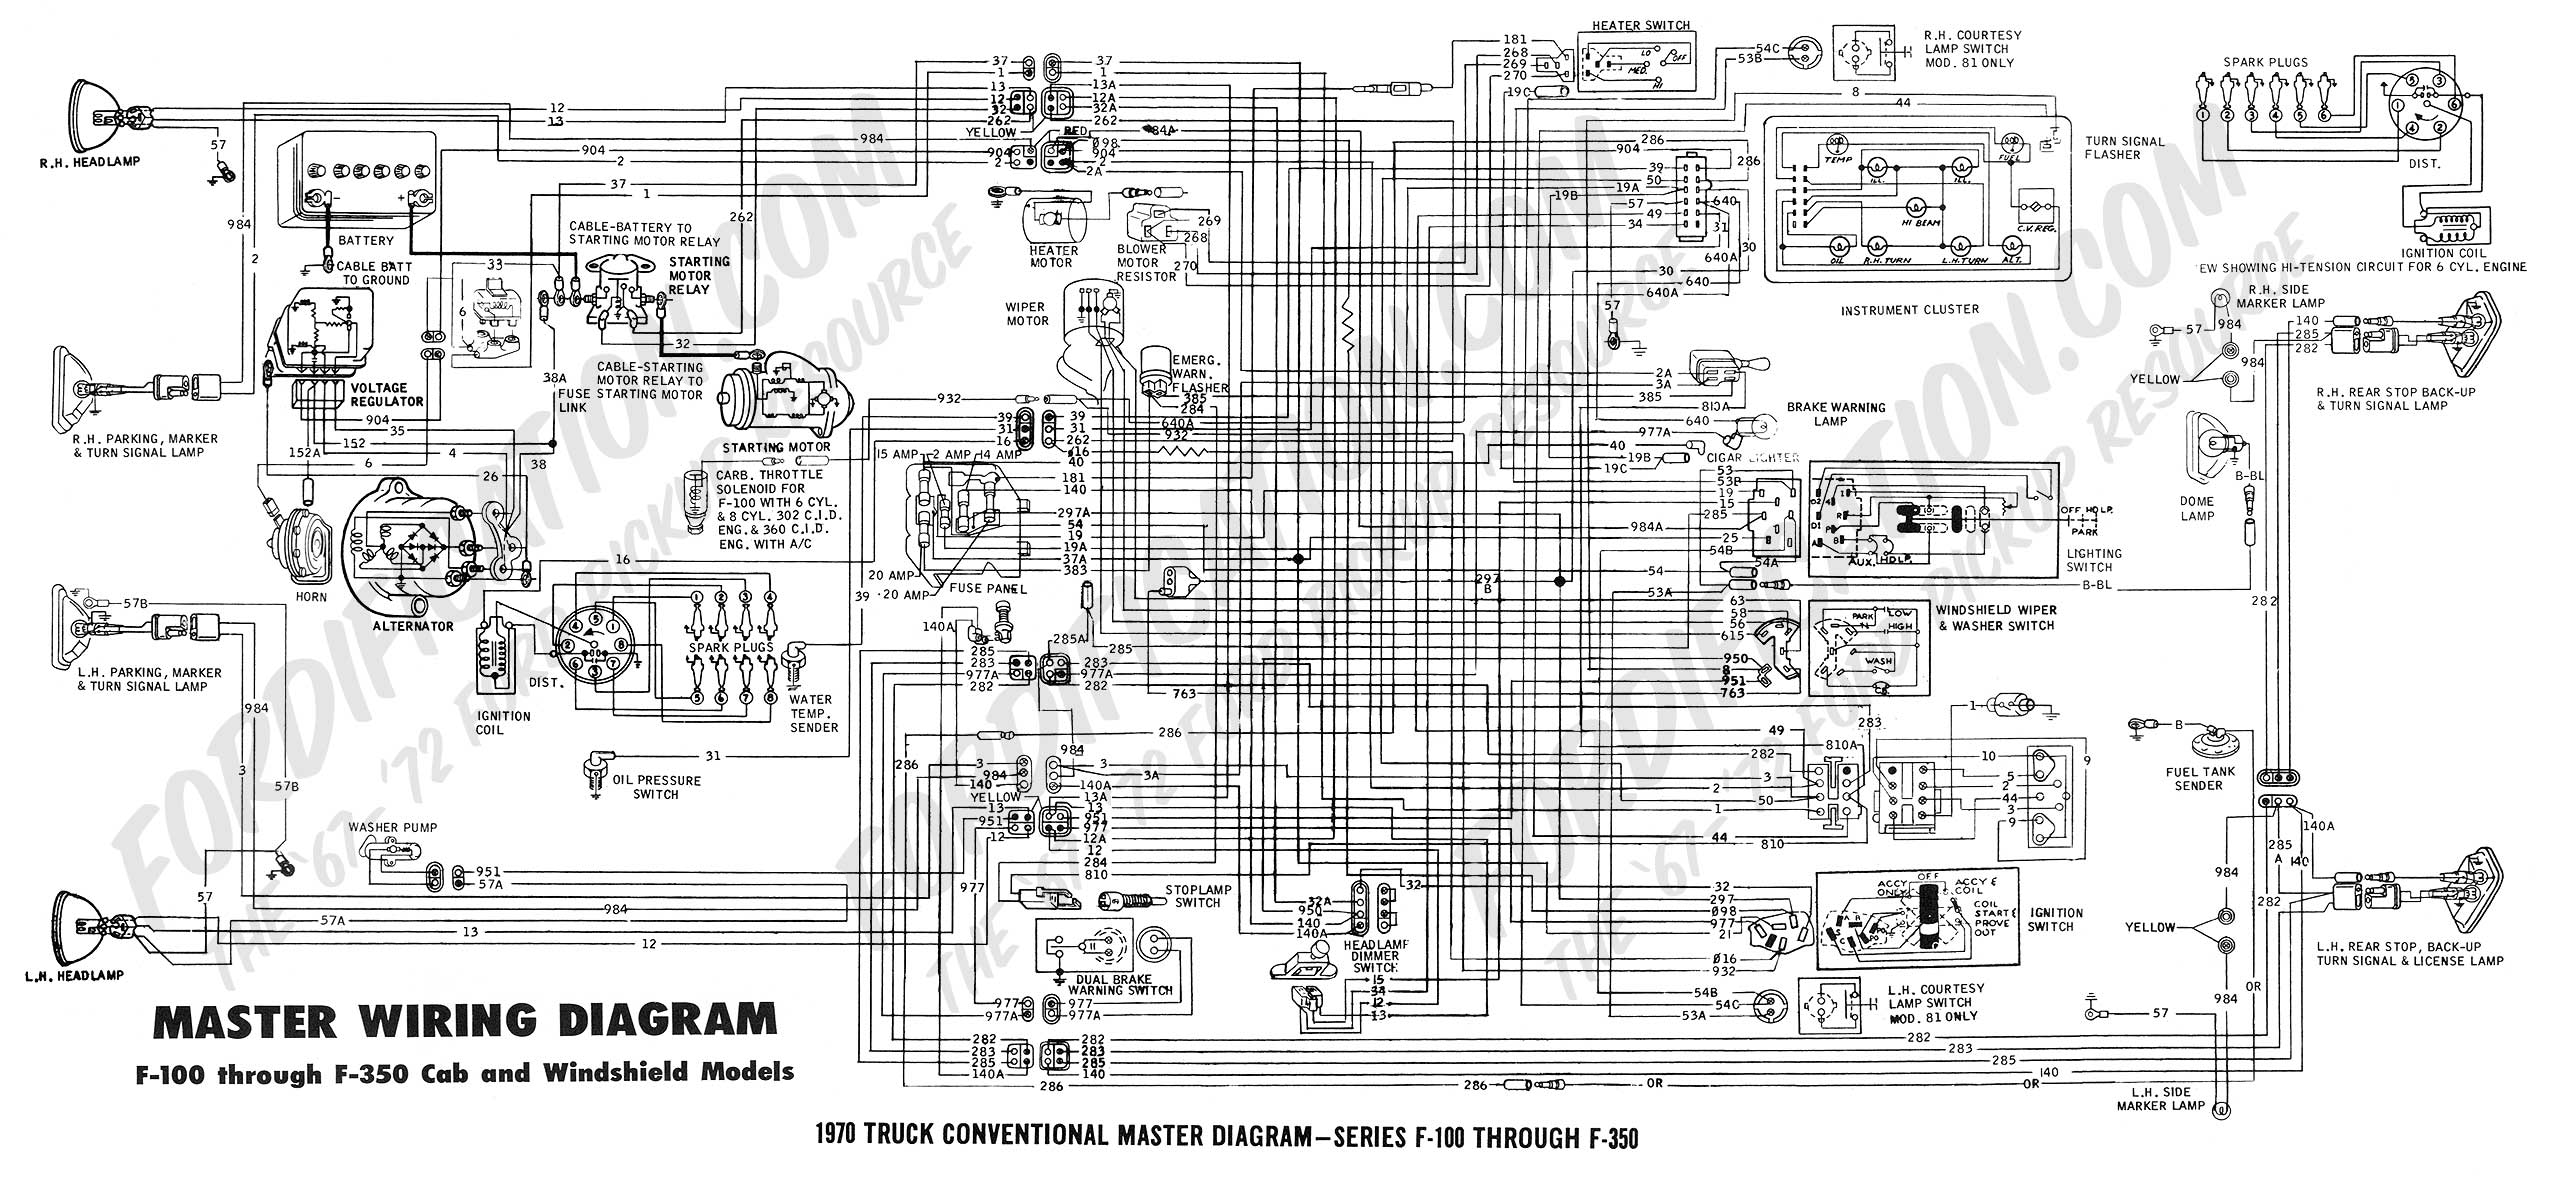 2003 mustang fog light wiring diagram images galaxie 500 wiring wiring diagram besides ignition yanmar